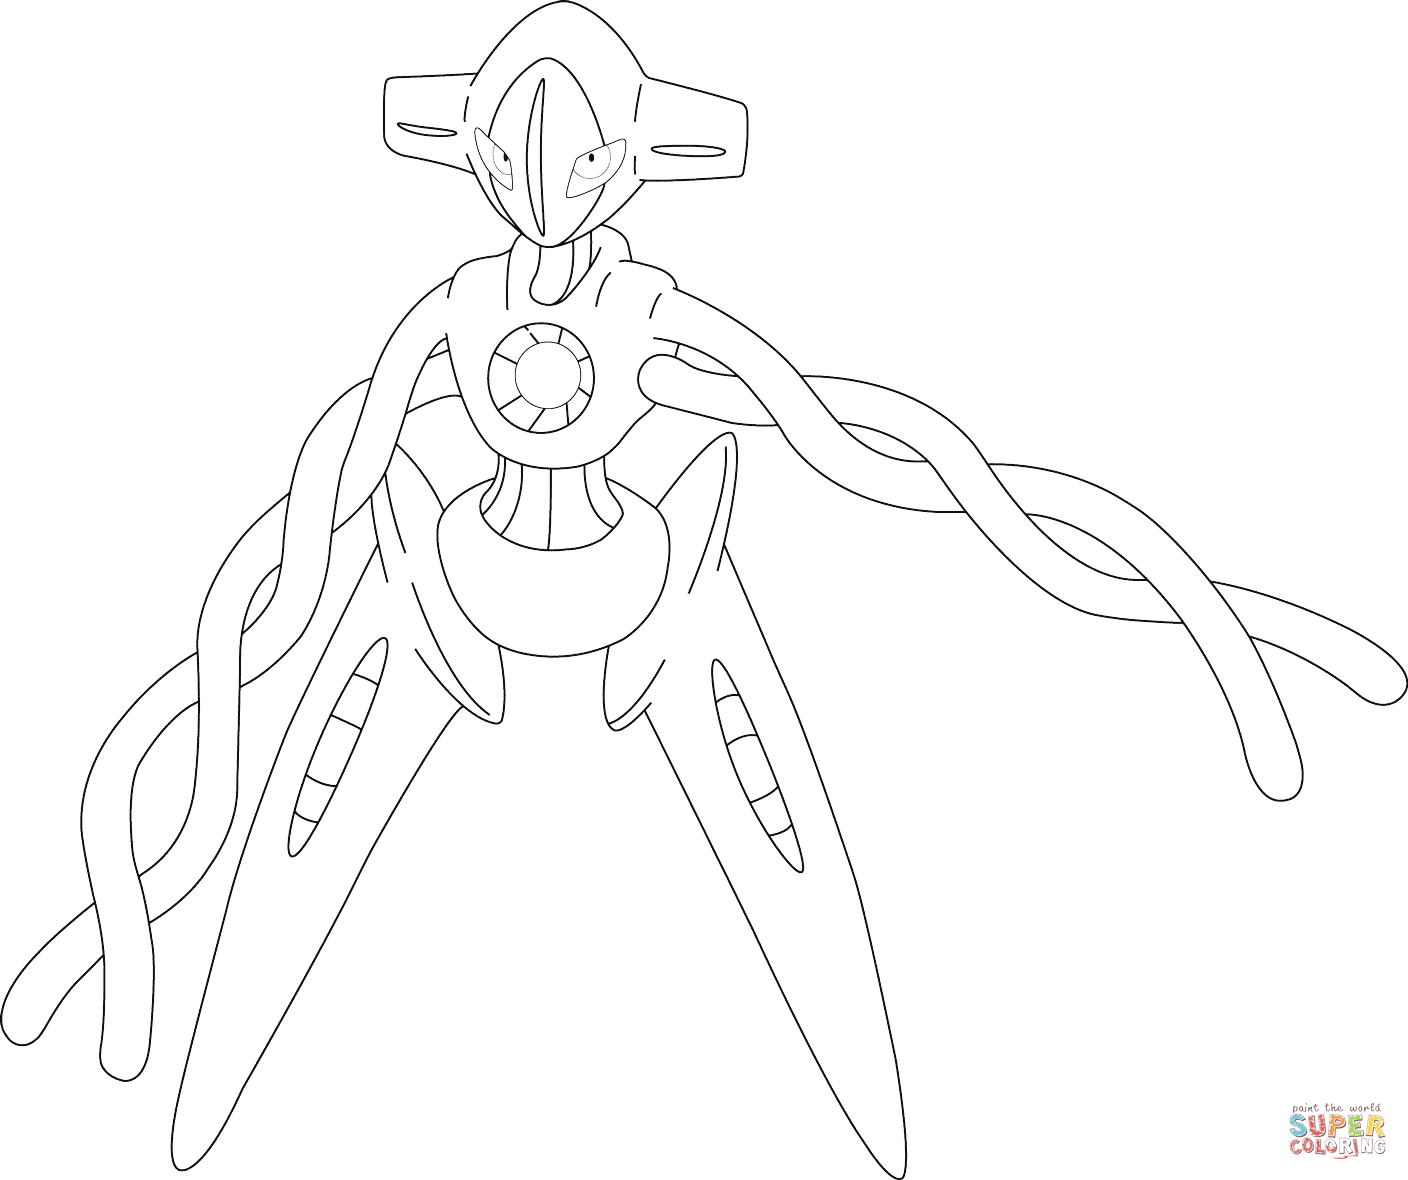 Click the deoxys pokemon coloring pages to view printable version or color it online compatible with ipad and android tablets